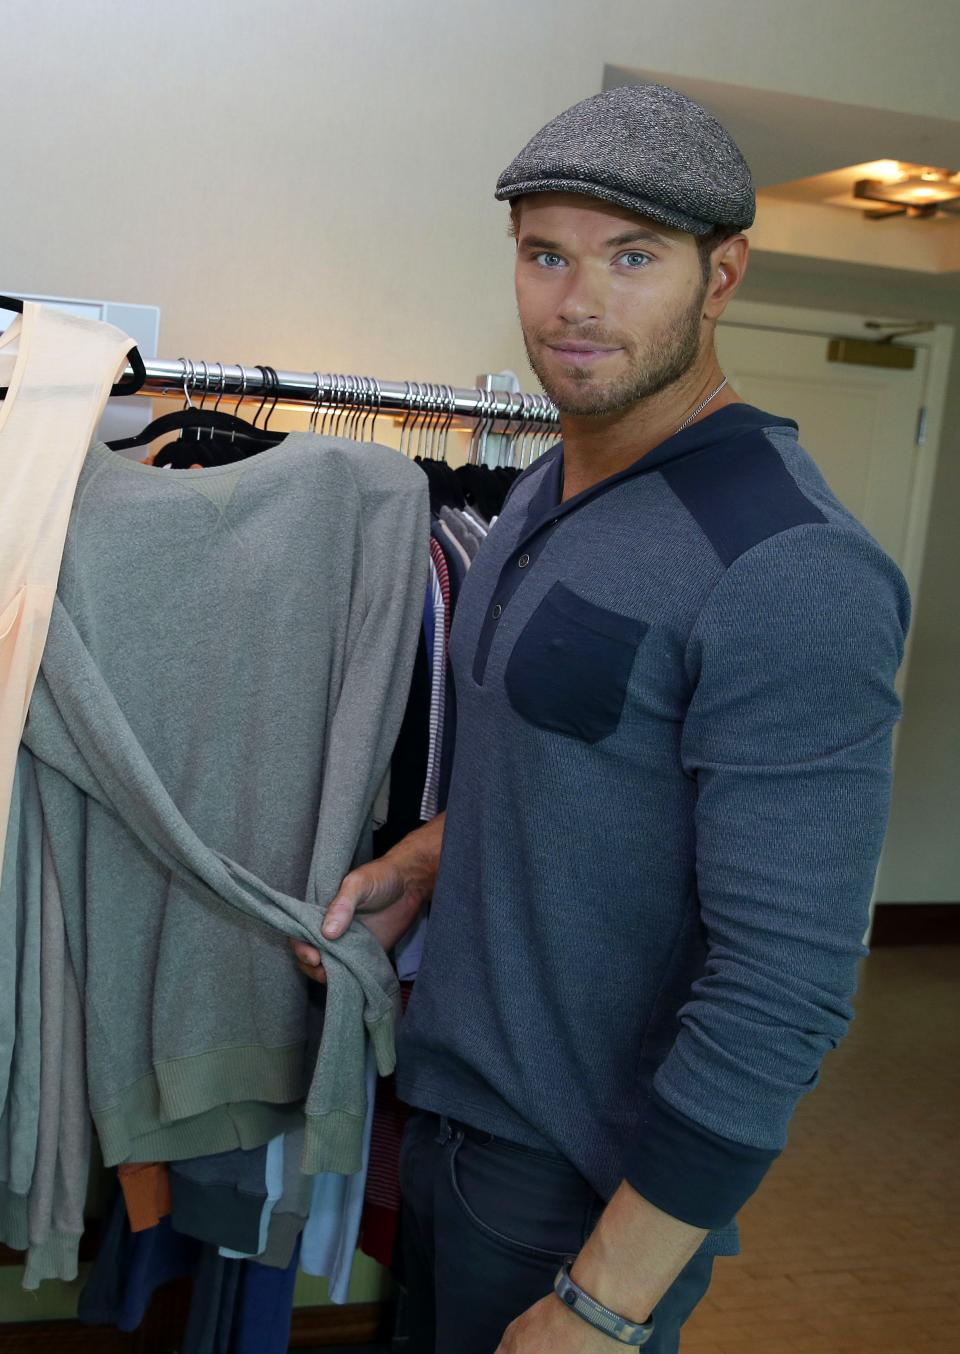 Actor and designer Kellan Lutz poses with selections from his pre-spring 2014 clothing line Abbot + Main at the Mandalay Bay Hotel on Monday, Aug. 19, 2013 in Las Vegas. (Photo by Isaac Brekken/Invision/AP)